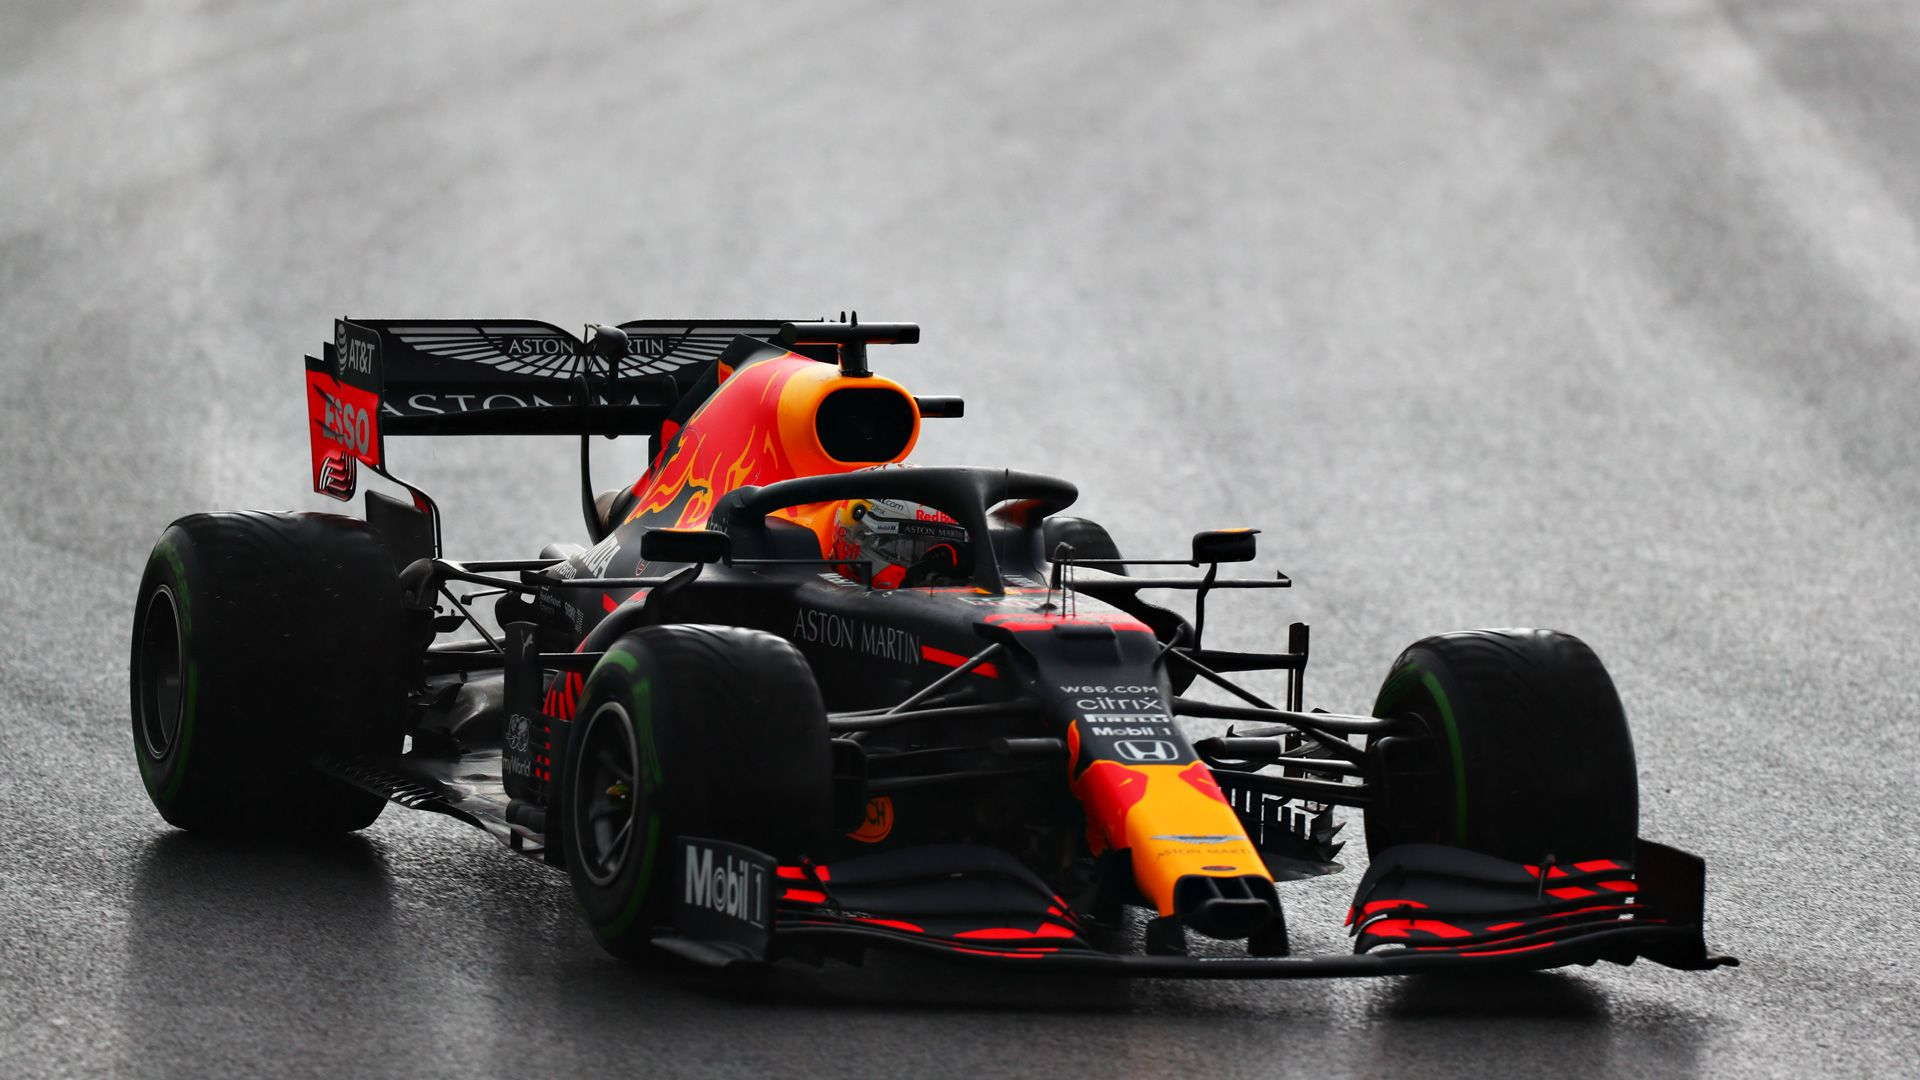 2020 Turkish Grand Prix FP3 report and highlights: Verstappen quickest in final practice as rain makes meaningful running impossible